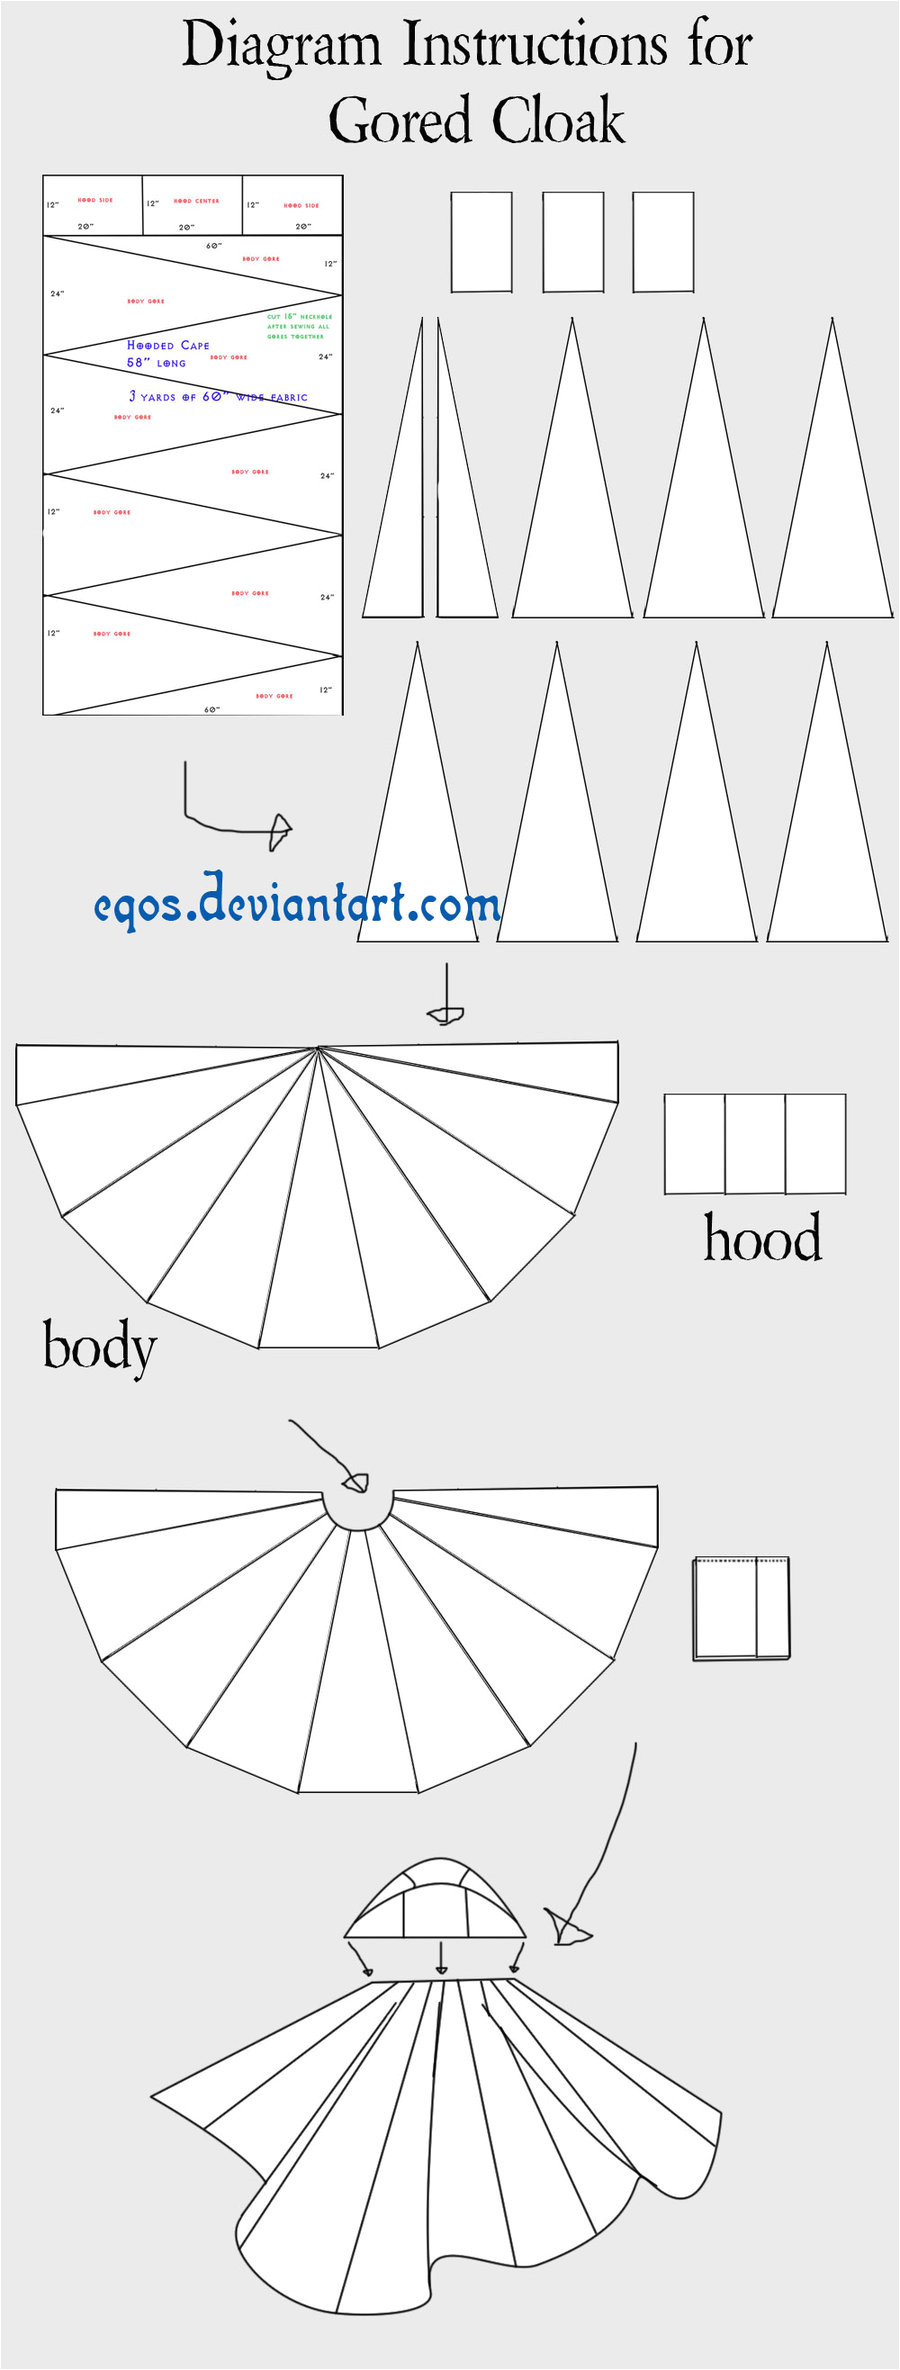 Cloak Template Instructions for Gored Cloak by Eqos On Deviantart